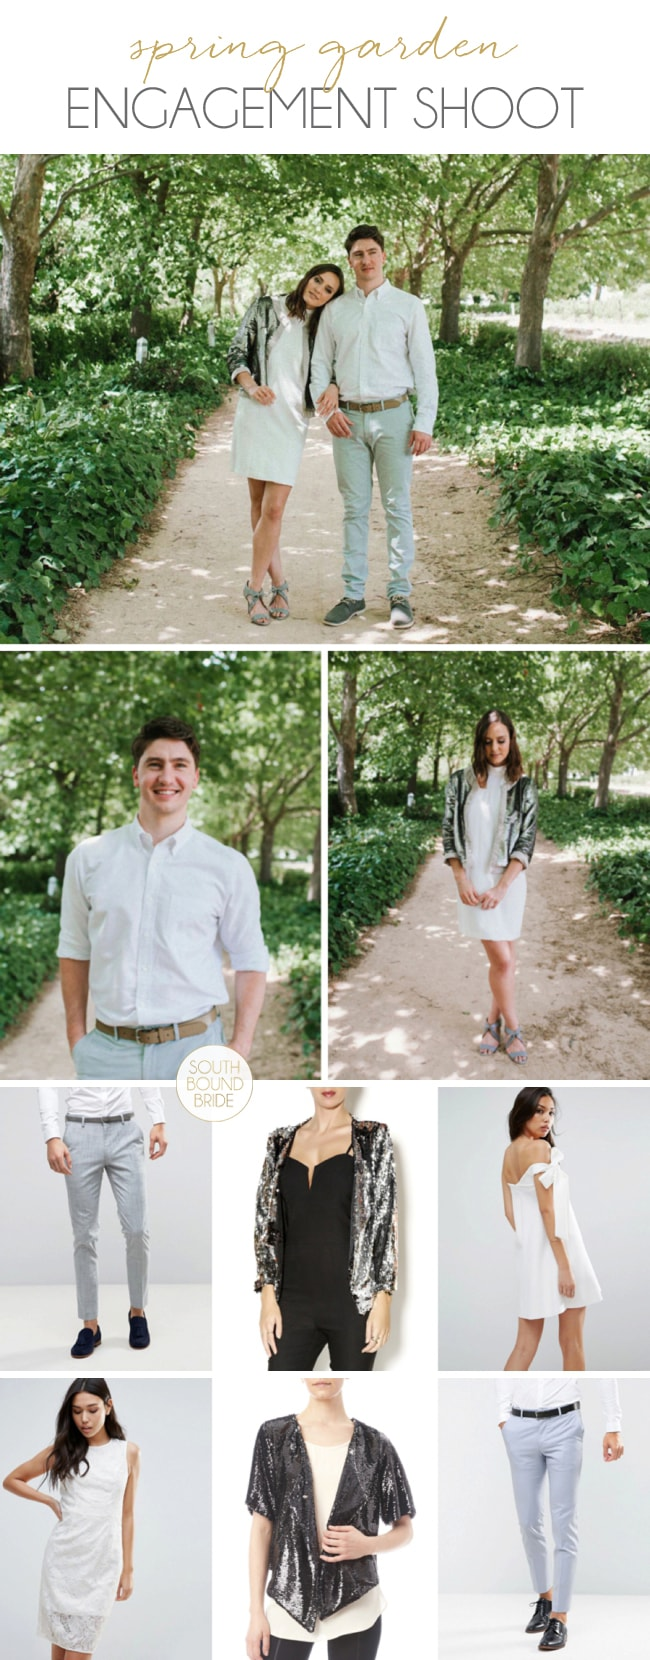 Spring Garden Engagement Shoot by Claire Thomson | SouthBound Bride